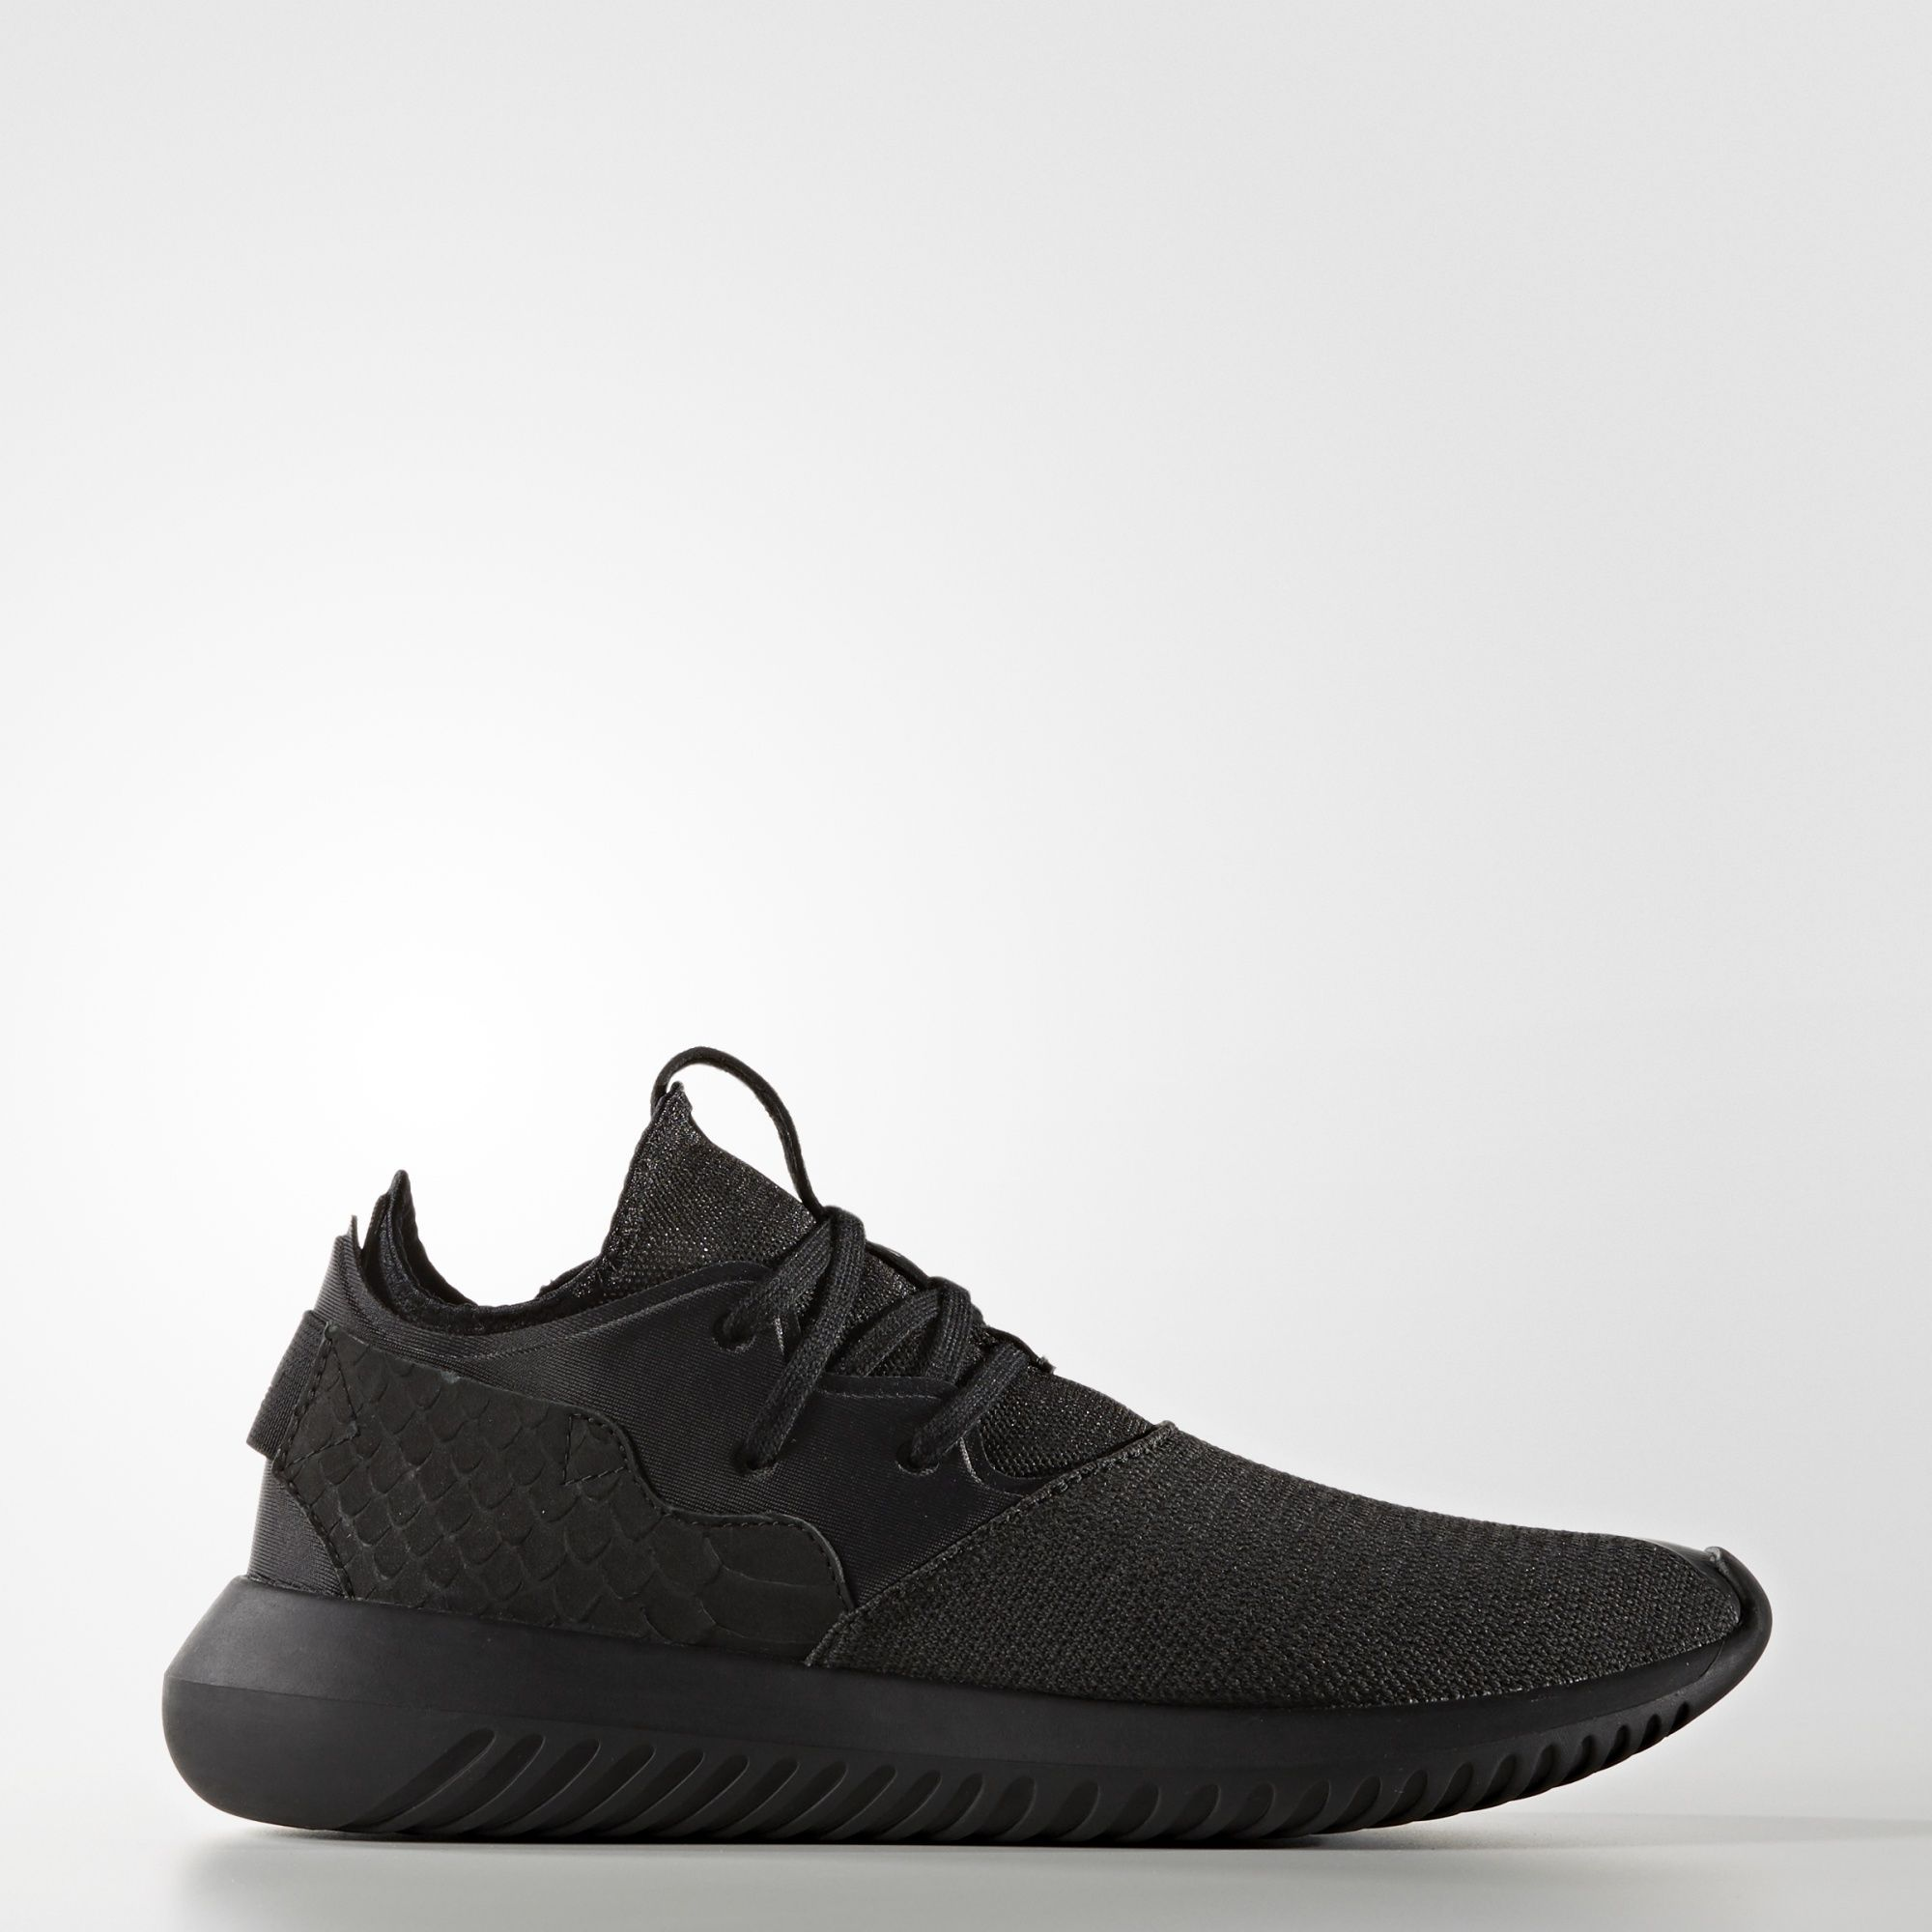 adidas nmd xr1 triple black canada adidas shoes women pink and white